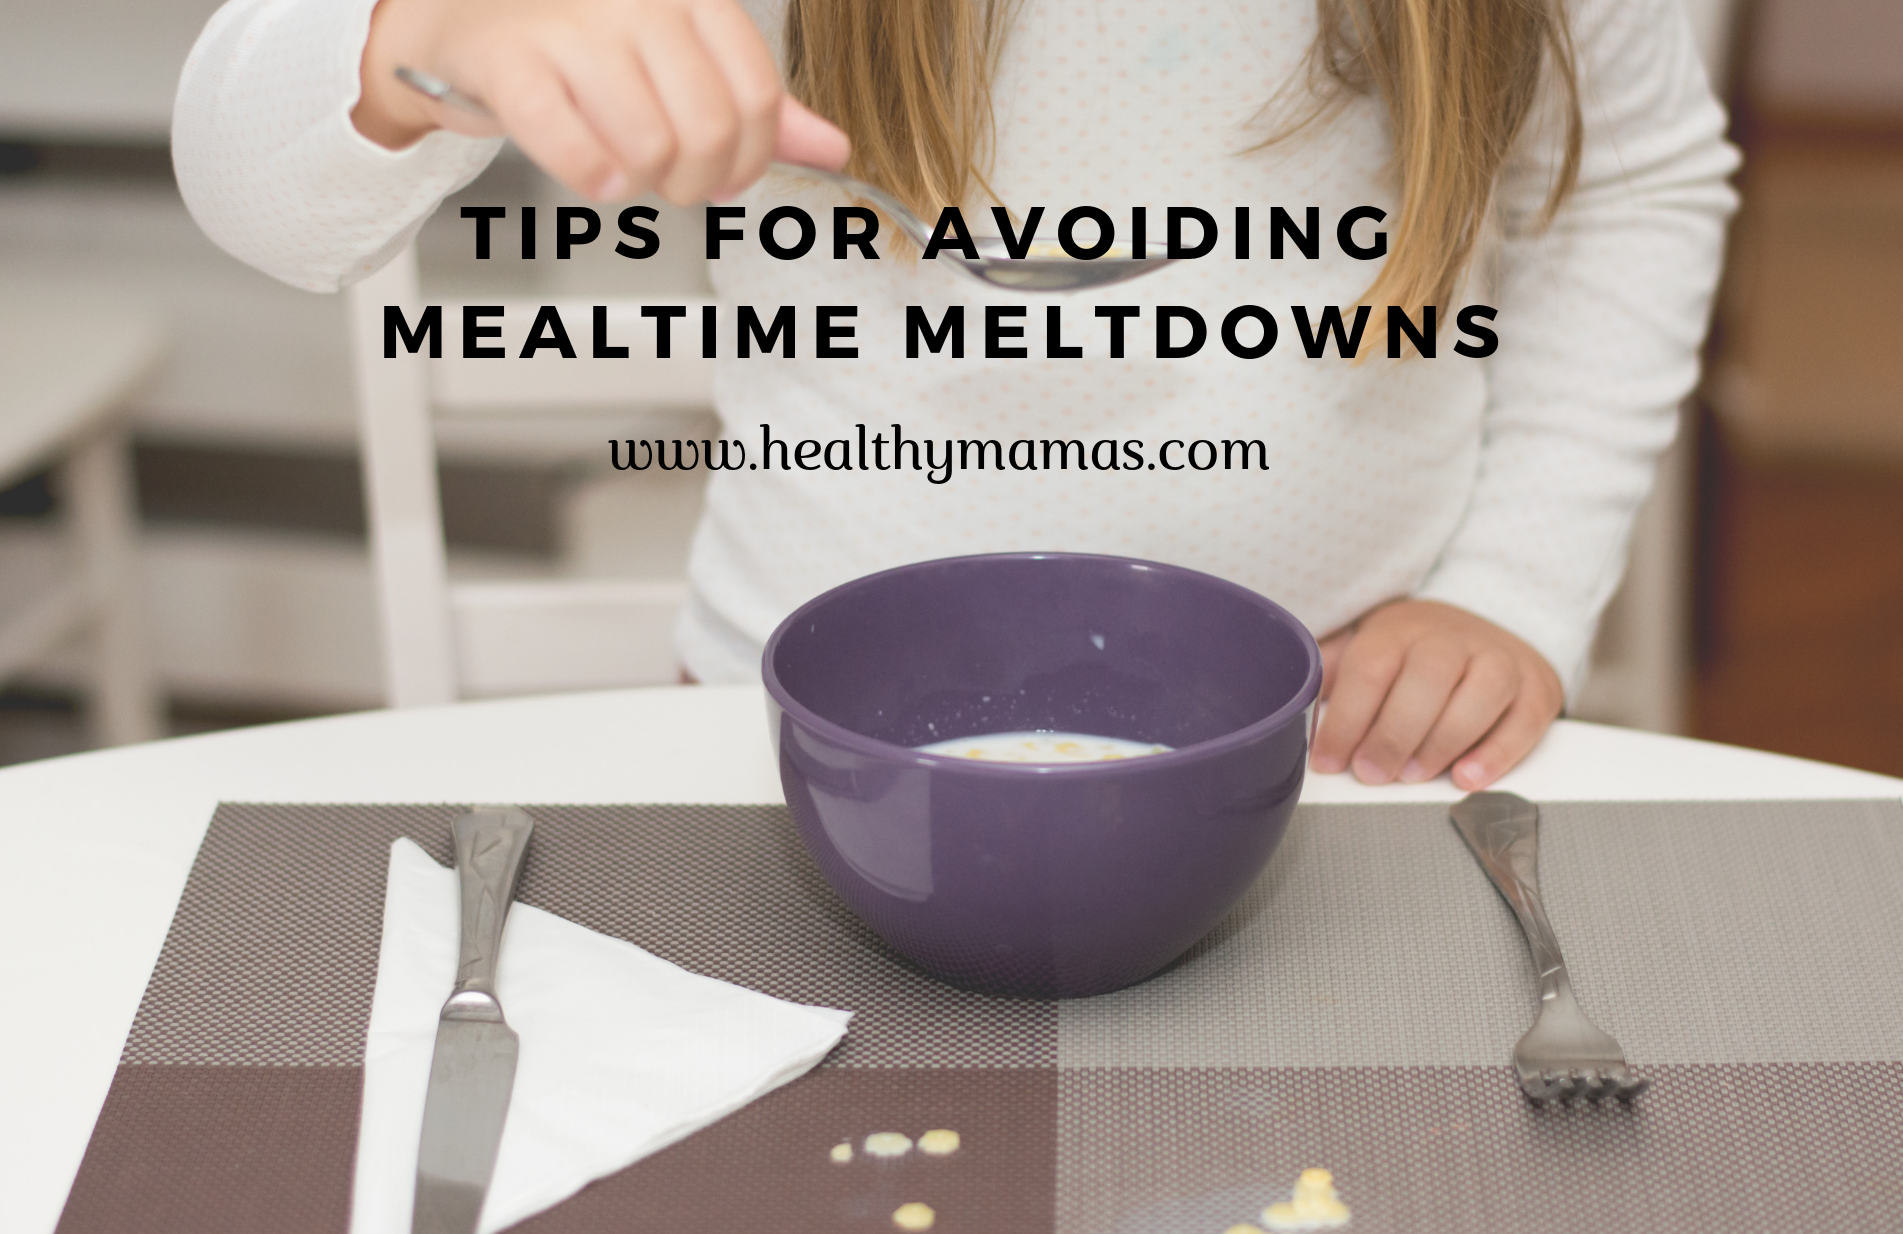 Stop Mealtime Meltdowns in Their Tracks